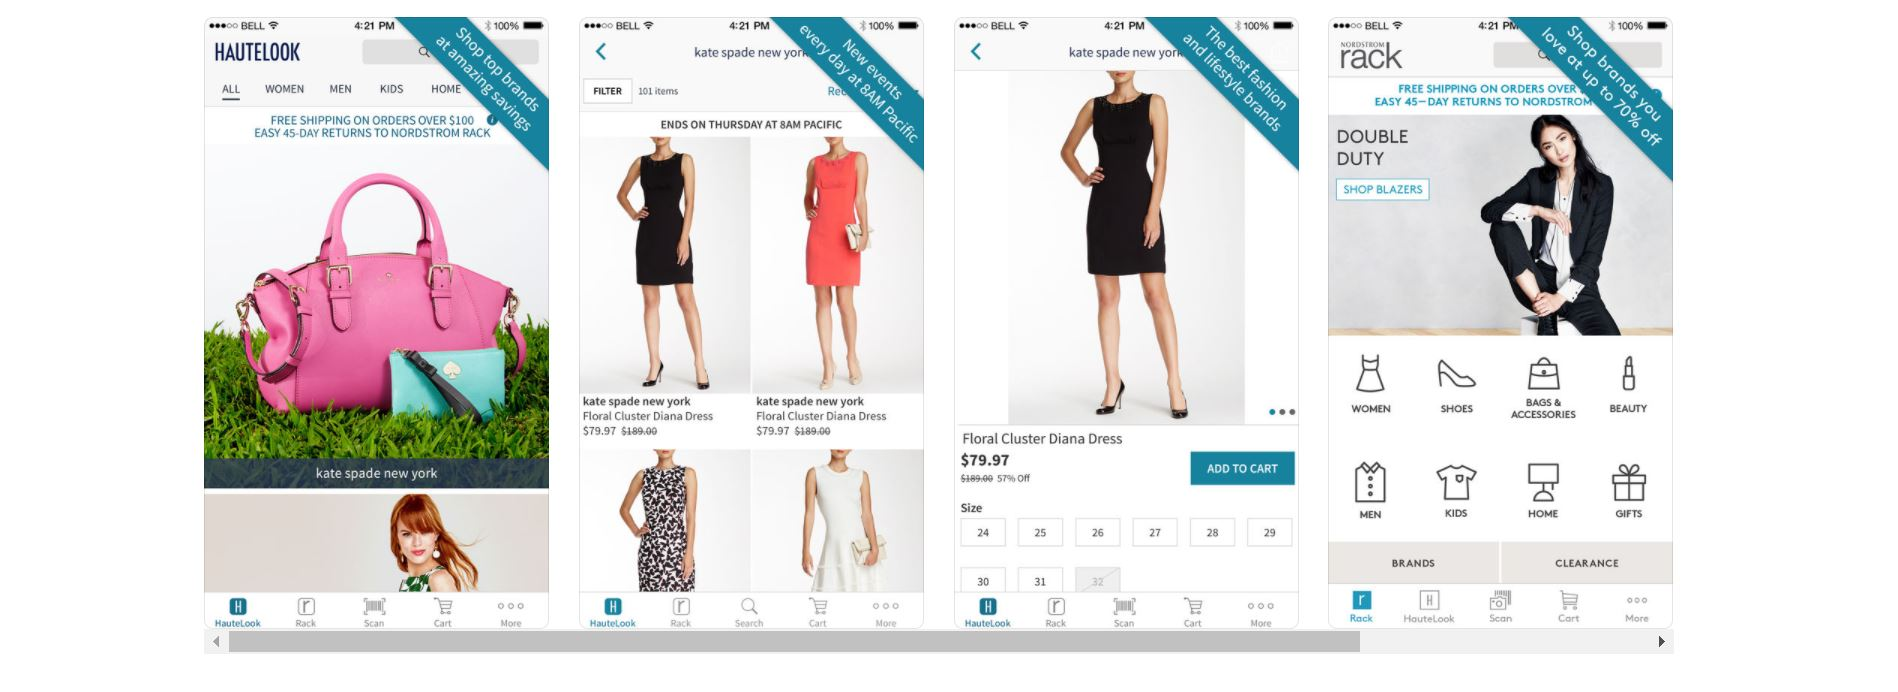 nordstrom hautelook on iphone